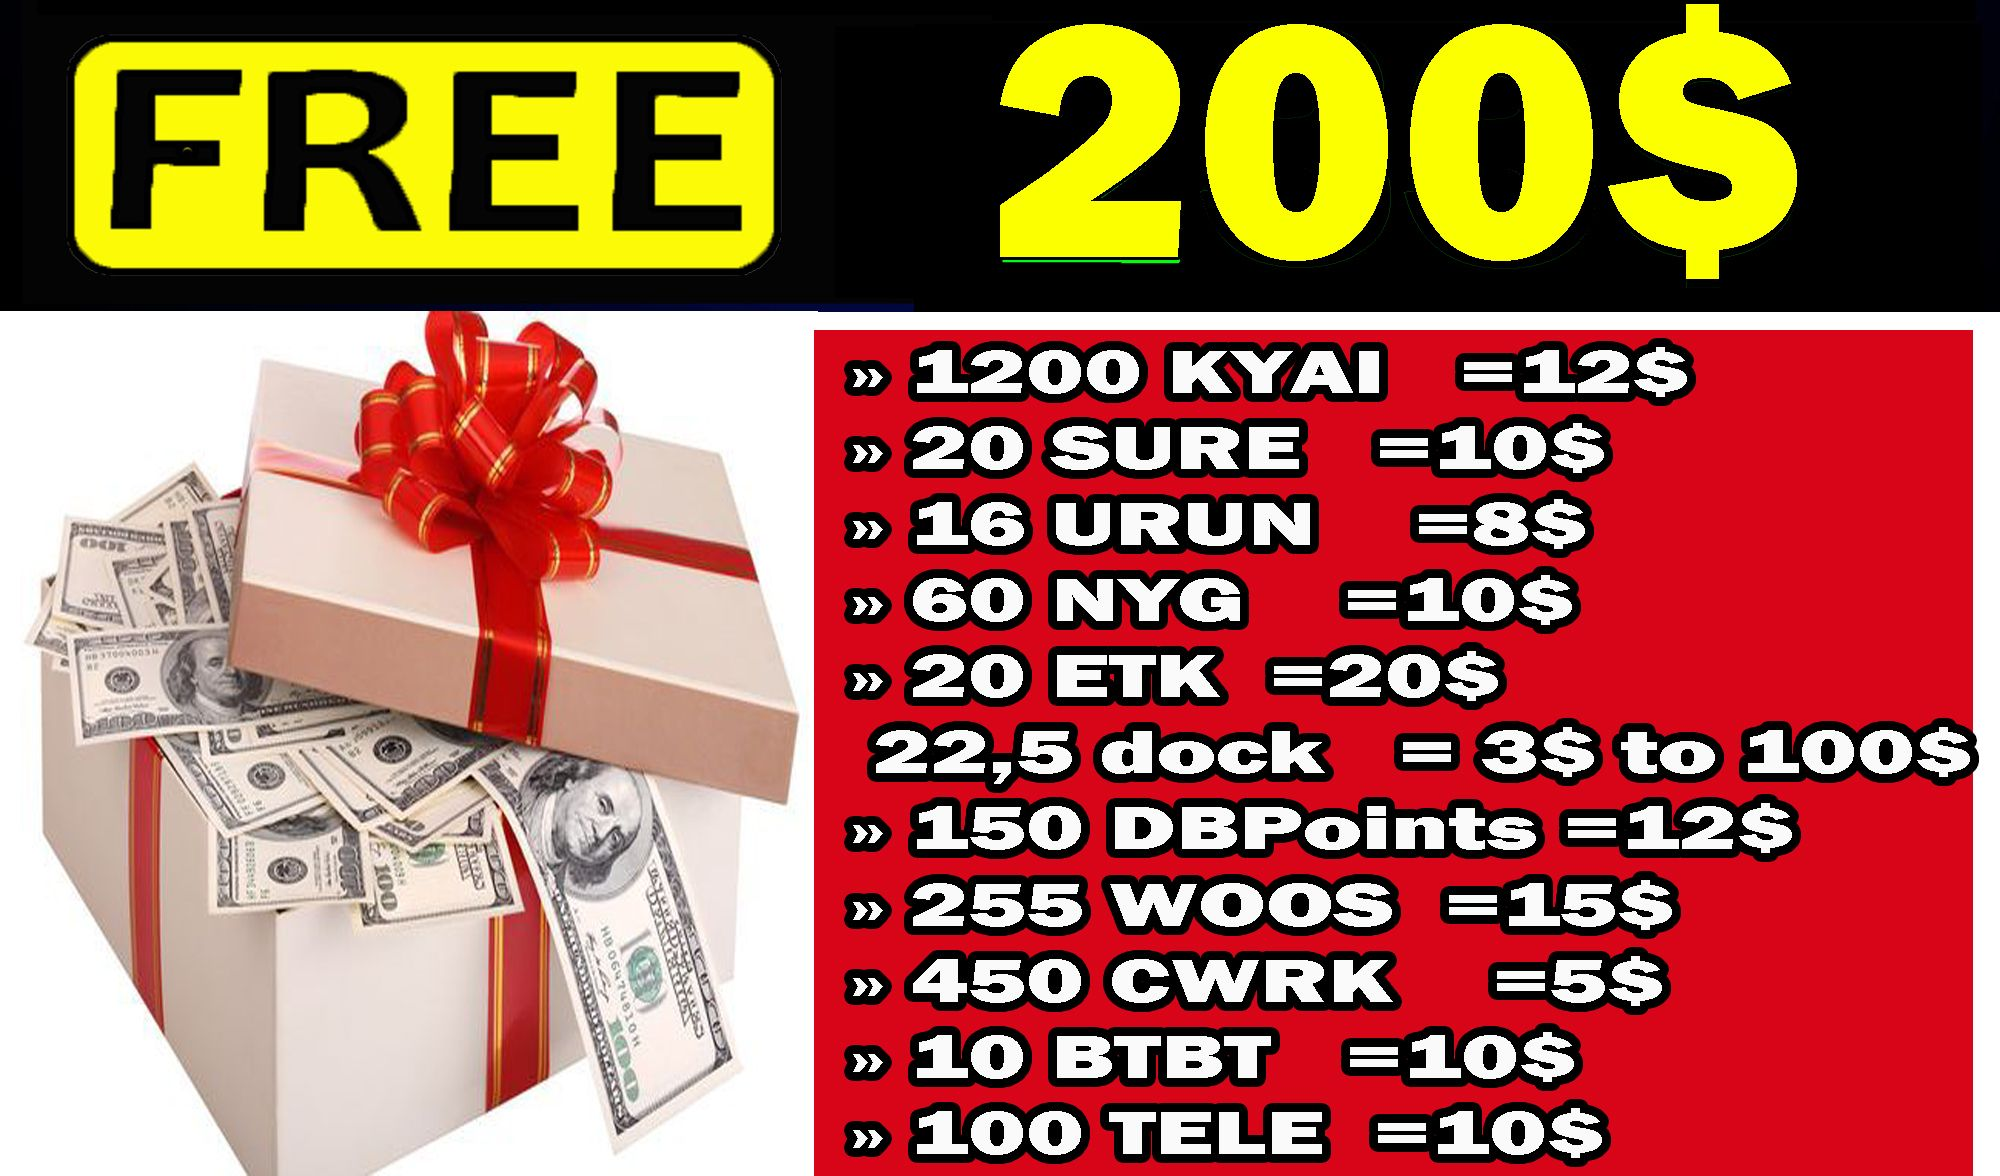 free airdrops 200 just signup + free 50 tokens